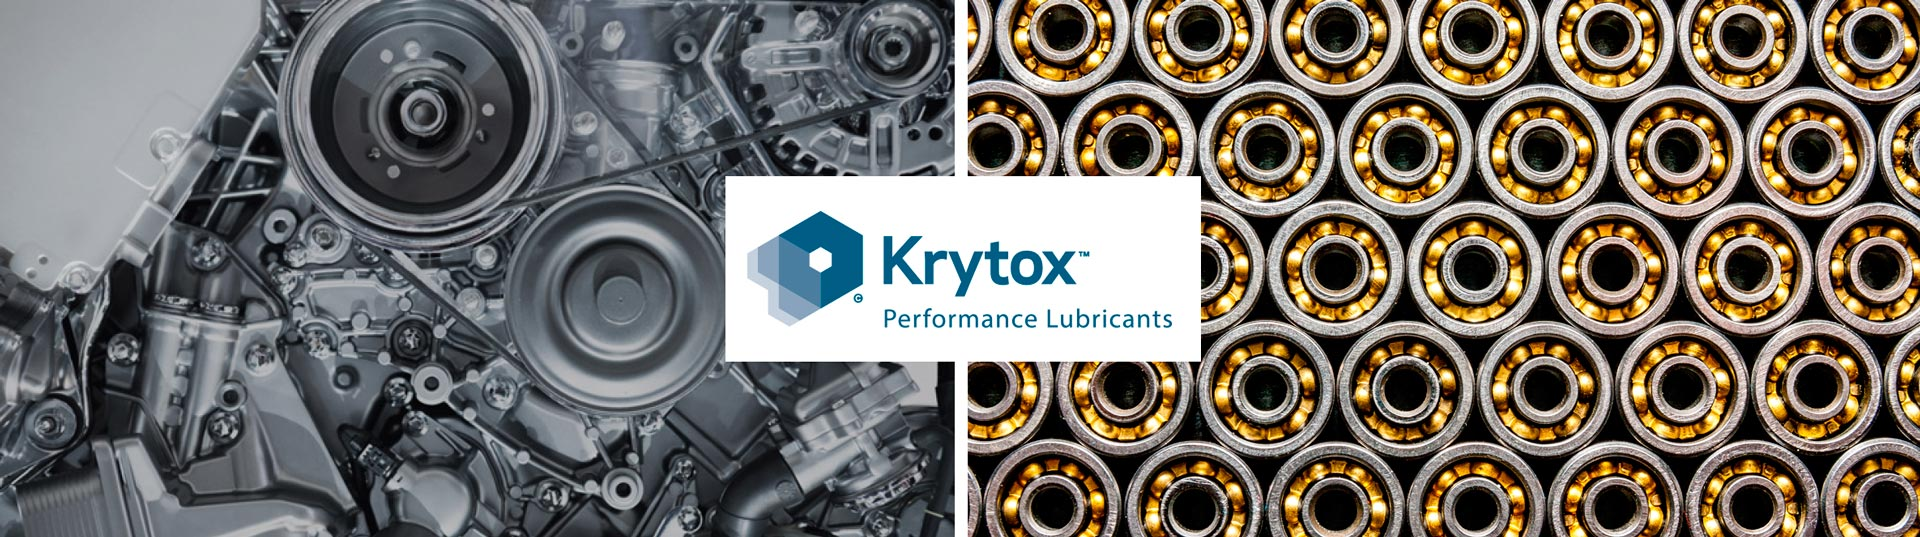 Krytox performance lubricants